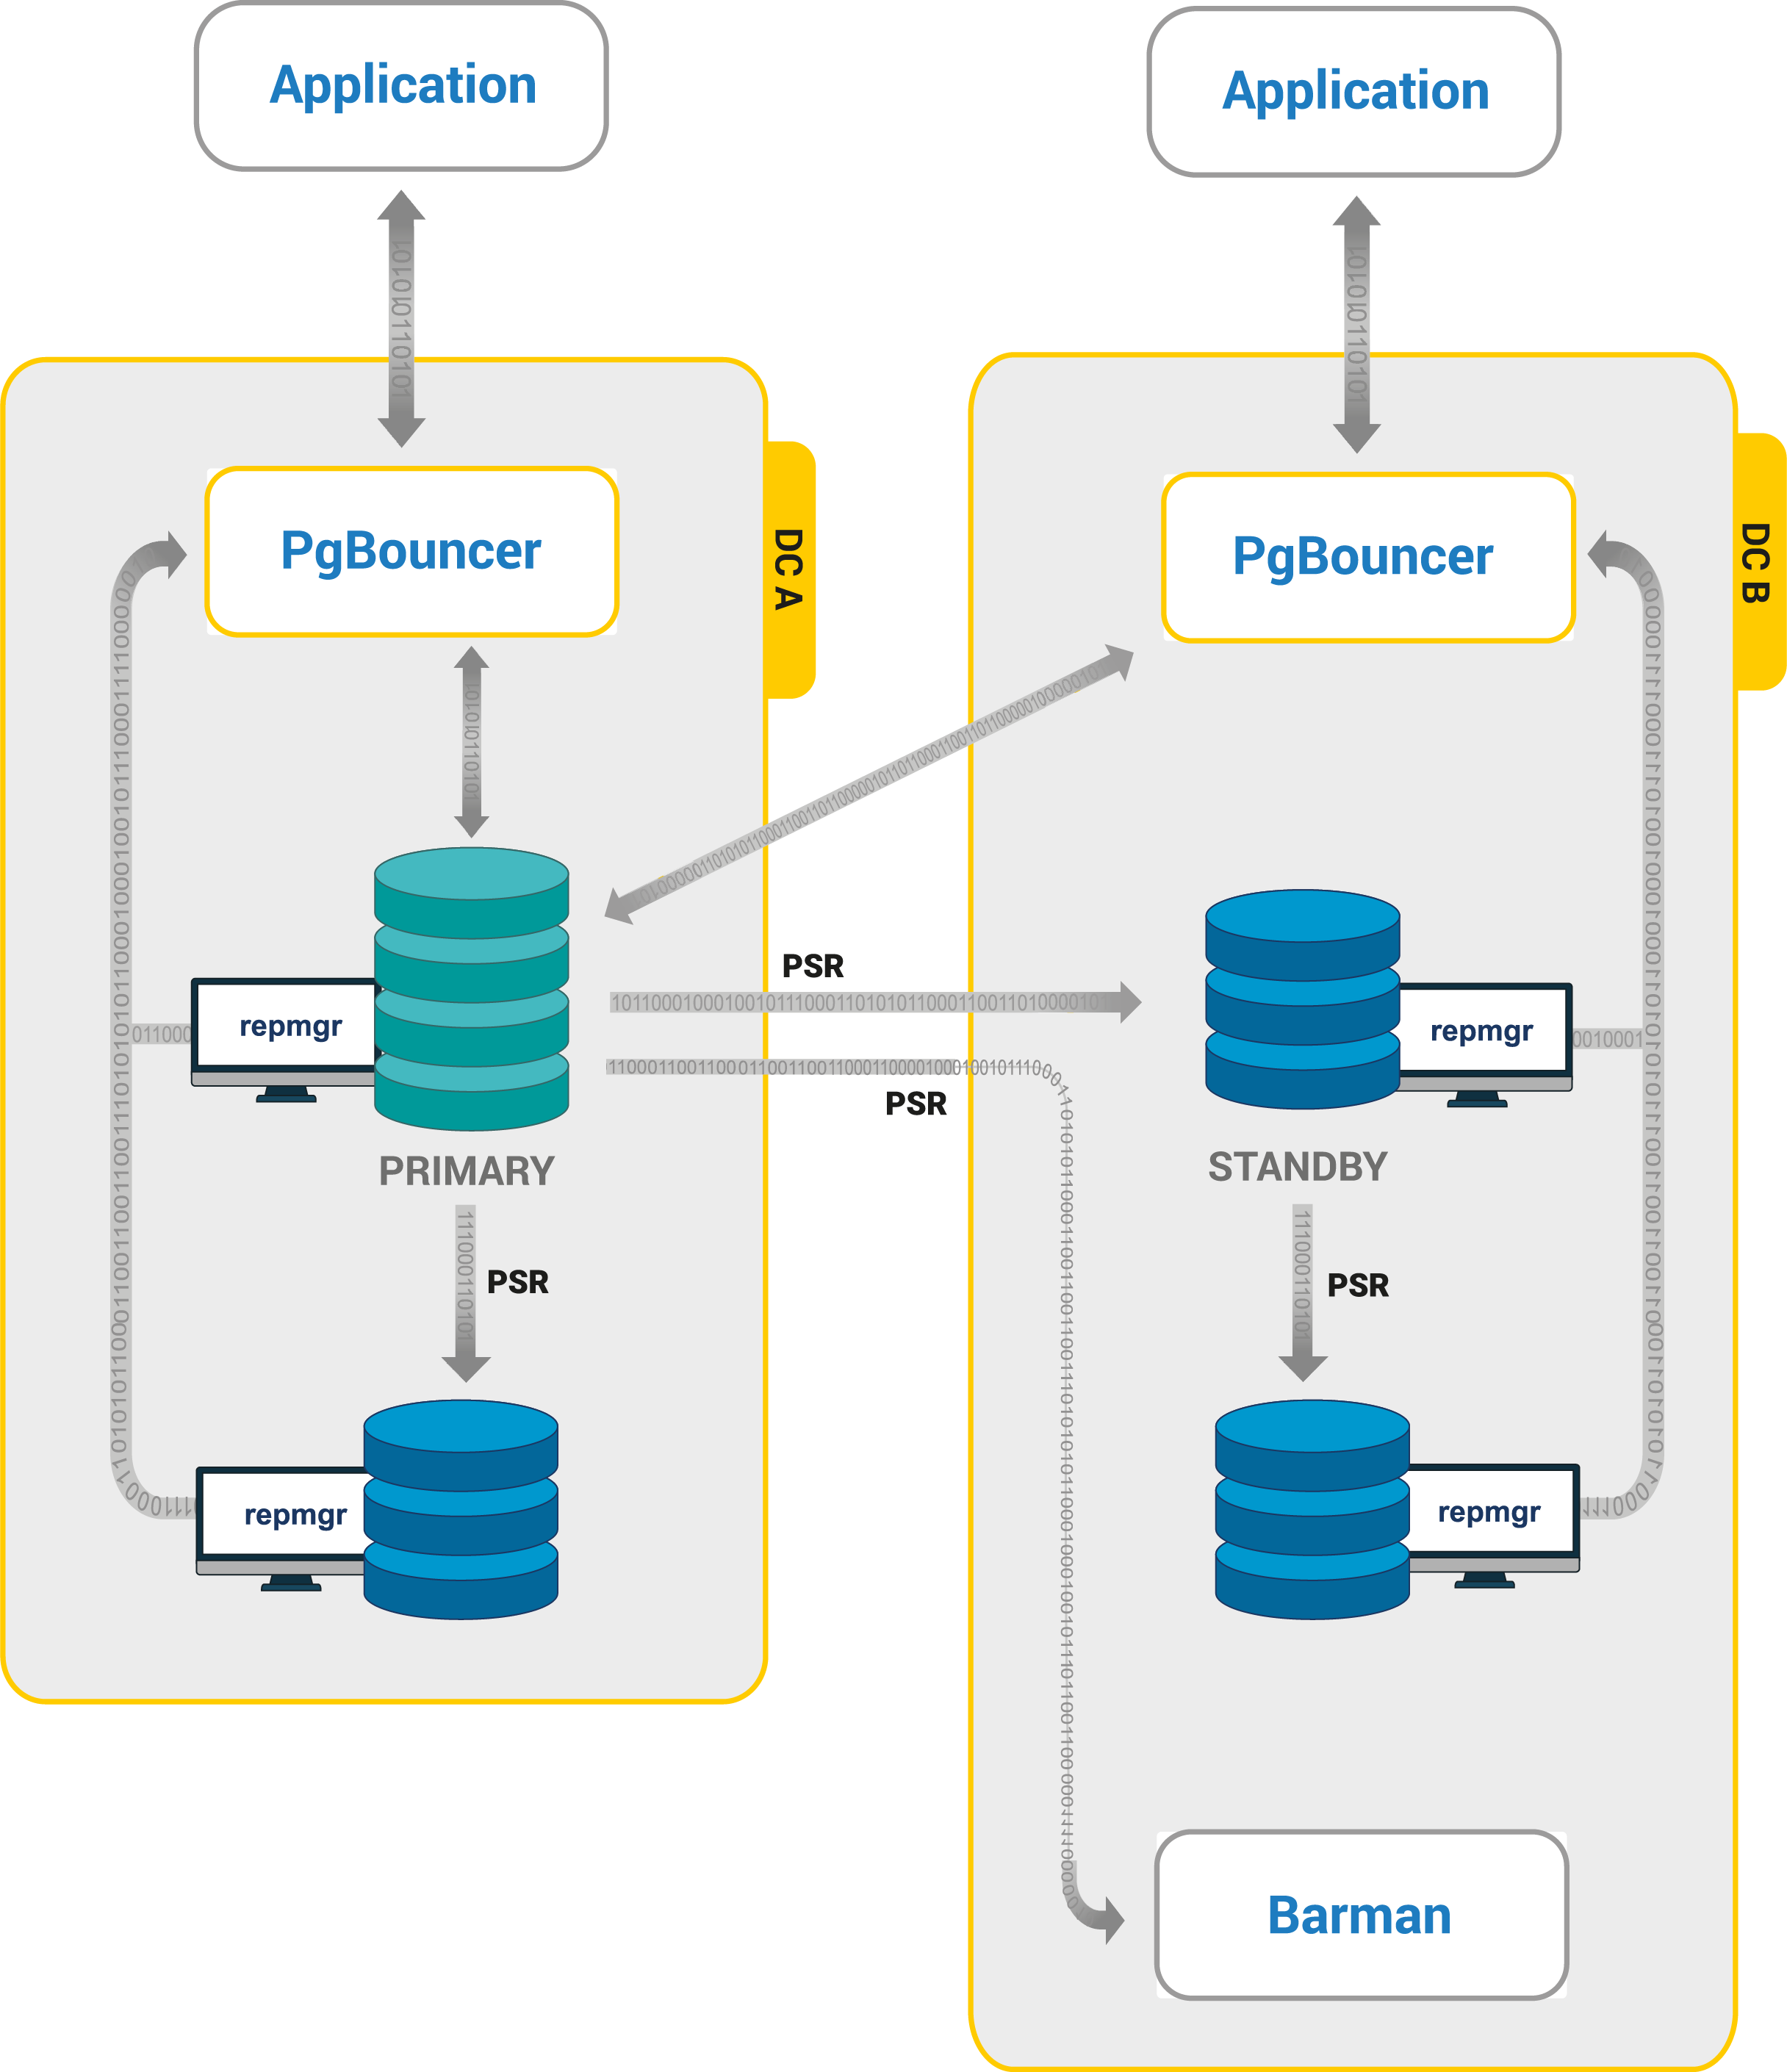 Highly Available Postgres Clusters Architecture, HA PostgreSQL Clusters